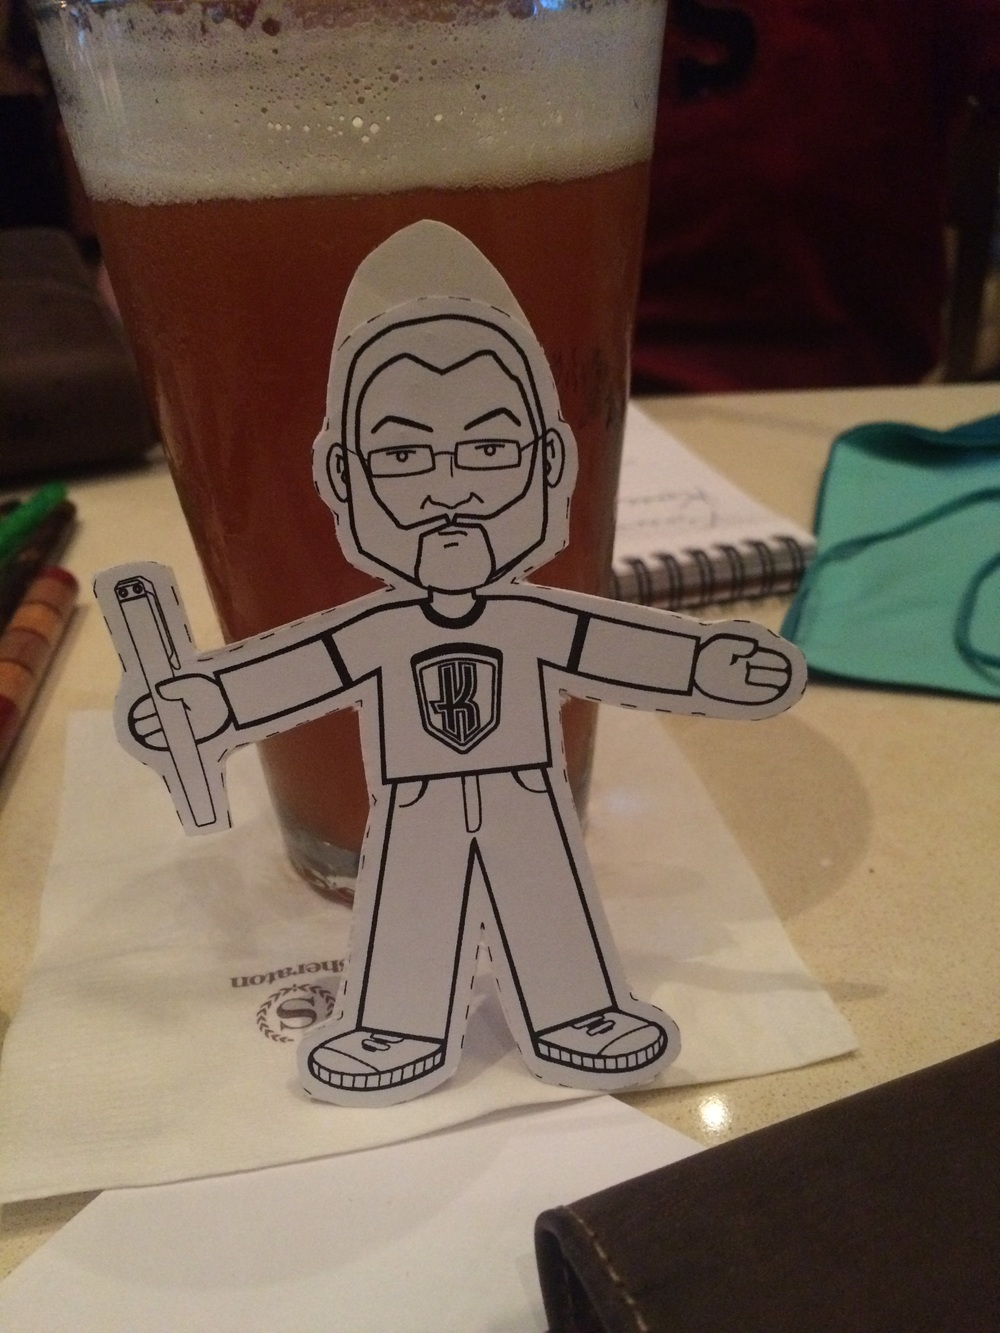 Flat Dan joins us at the bar.